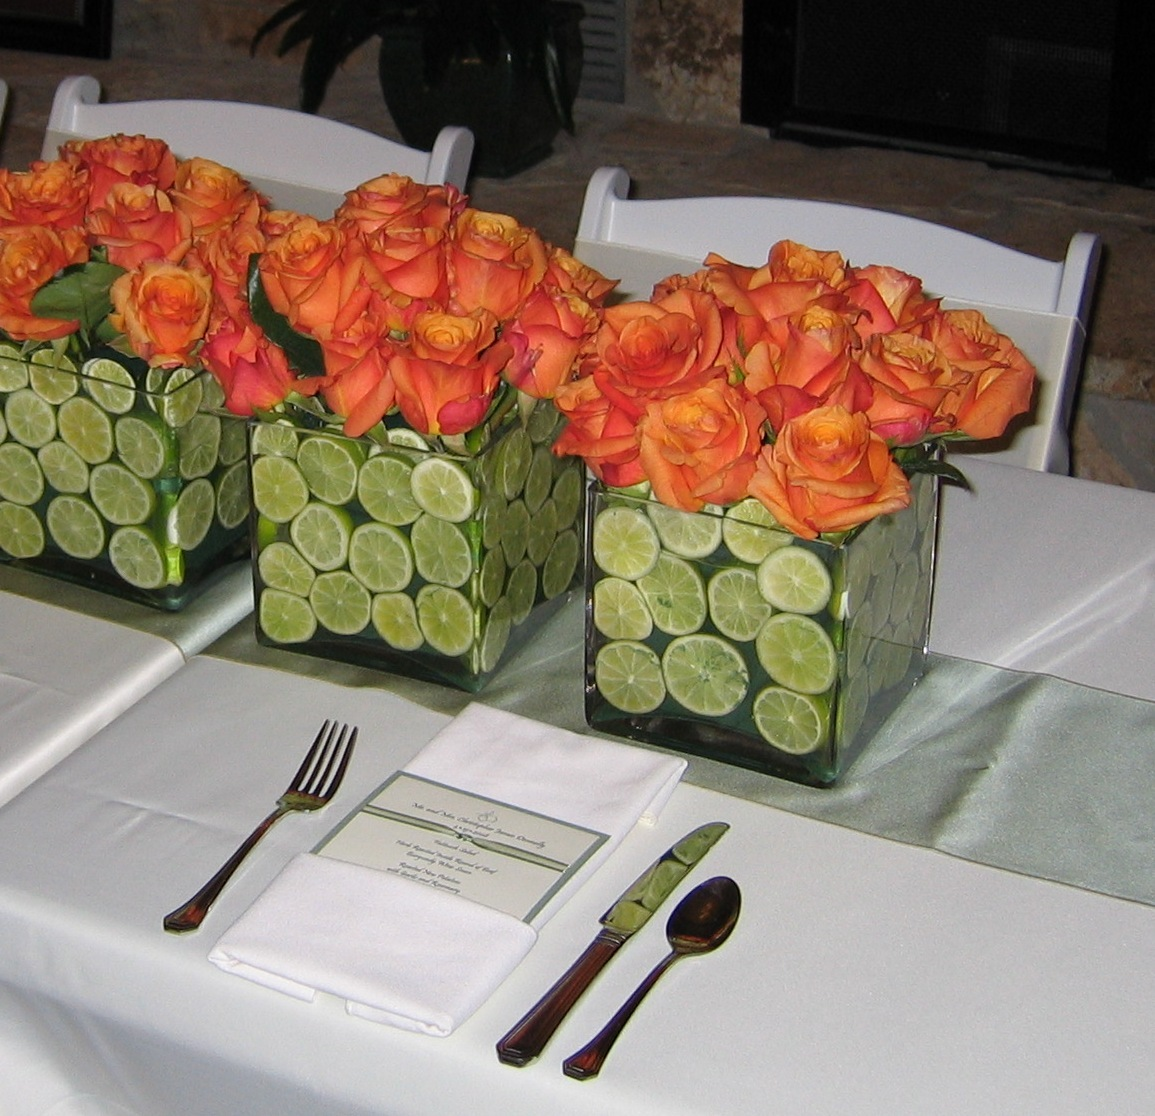 Flowers & Decor, Stationery, orange, green, Centerpieces, Invitations, Flowers, Centerpiece, Menu, The silver vase llc